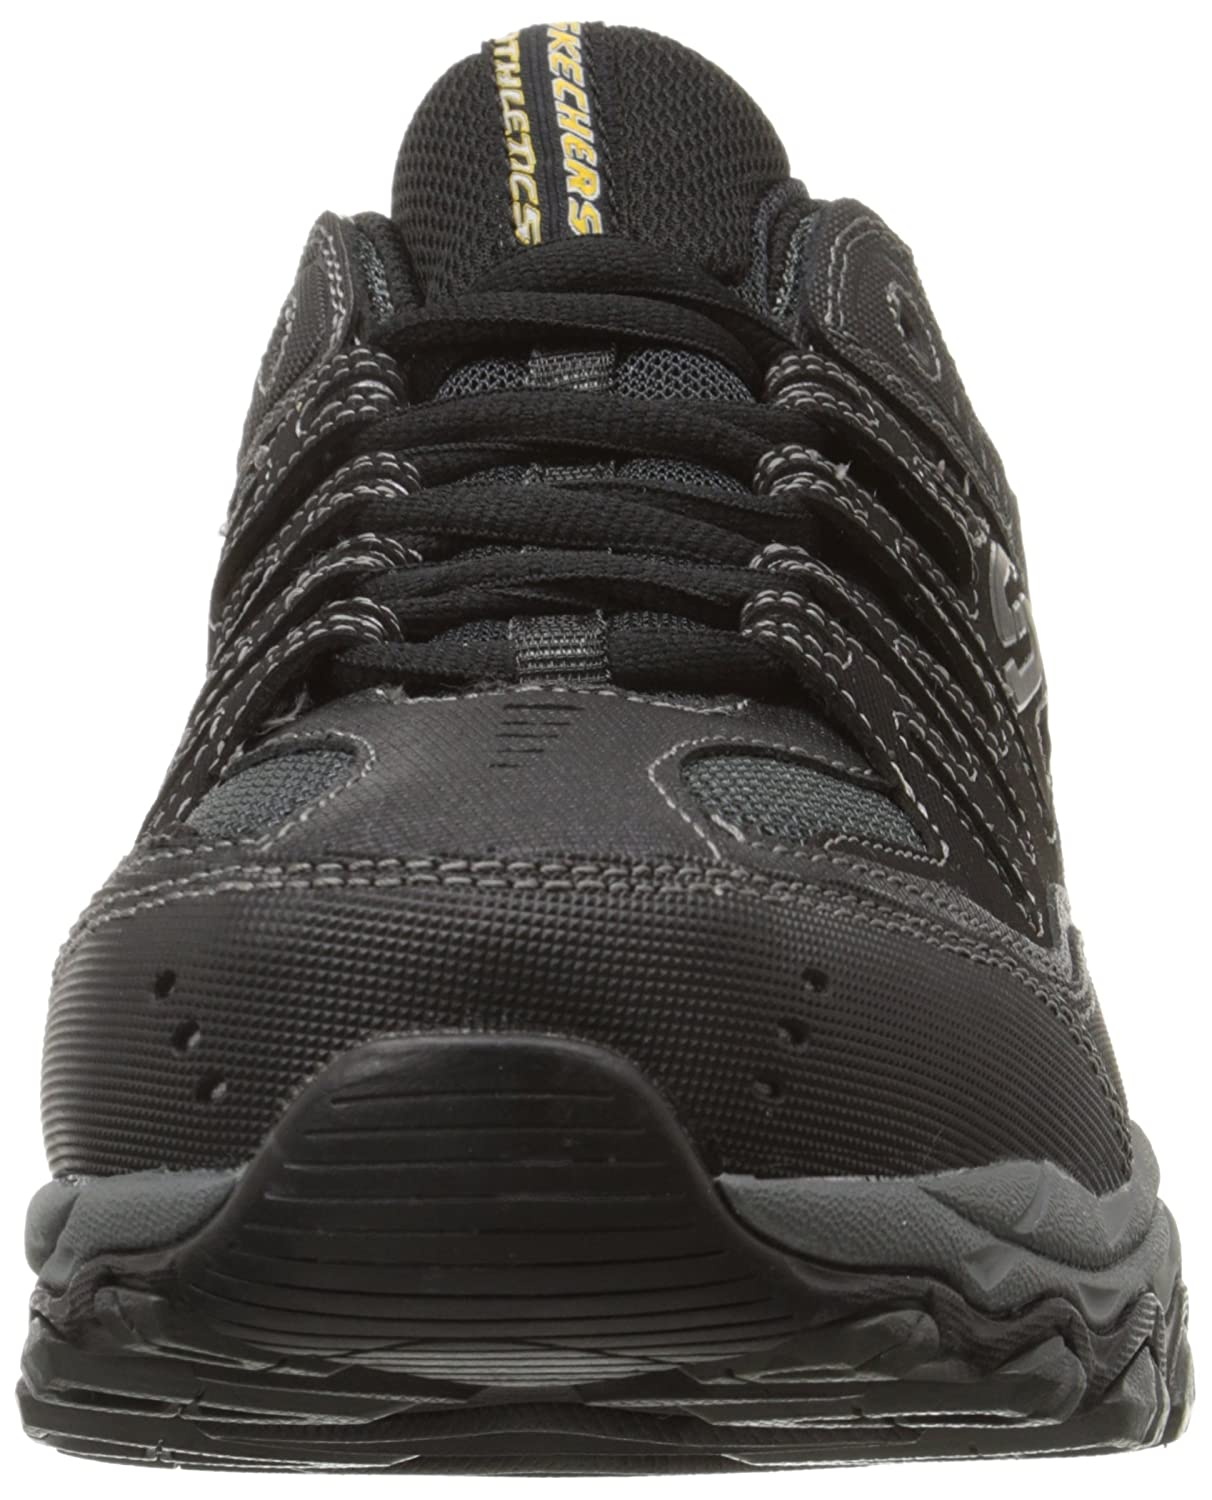 Skechers-Afterburn-Memory-Foam-M-Fit-Men-039-s-Sport-After-Burn-Sneakers-Shoes thumbnail 3